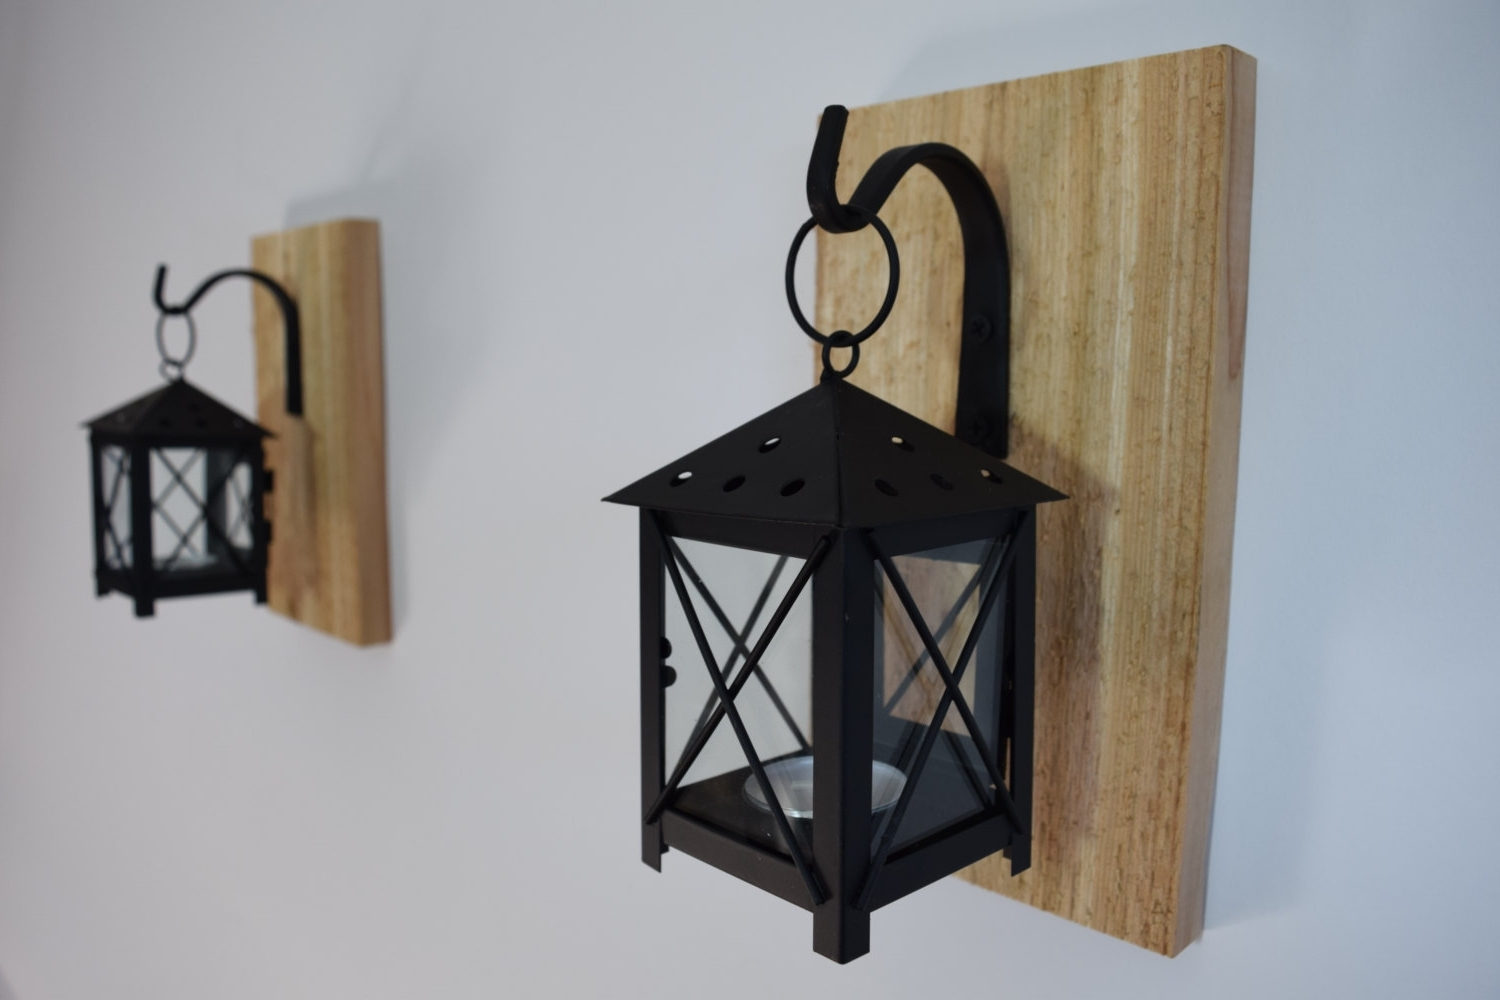 Well Known Etsy Outdoor Lanterns Pertaining To Wall Sconce Candle Holder Lantern Sconceswall Sconces Candles (View 18 of 20)